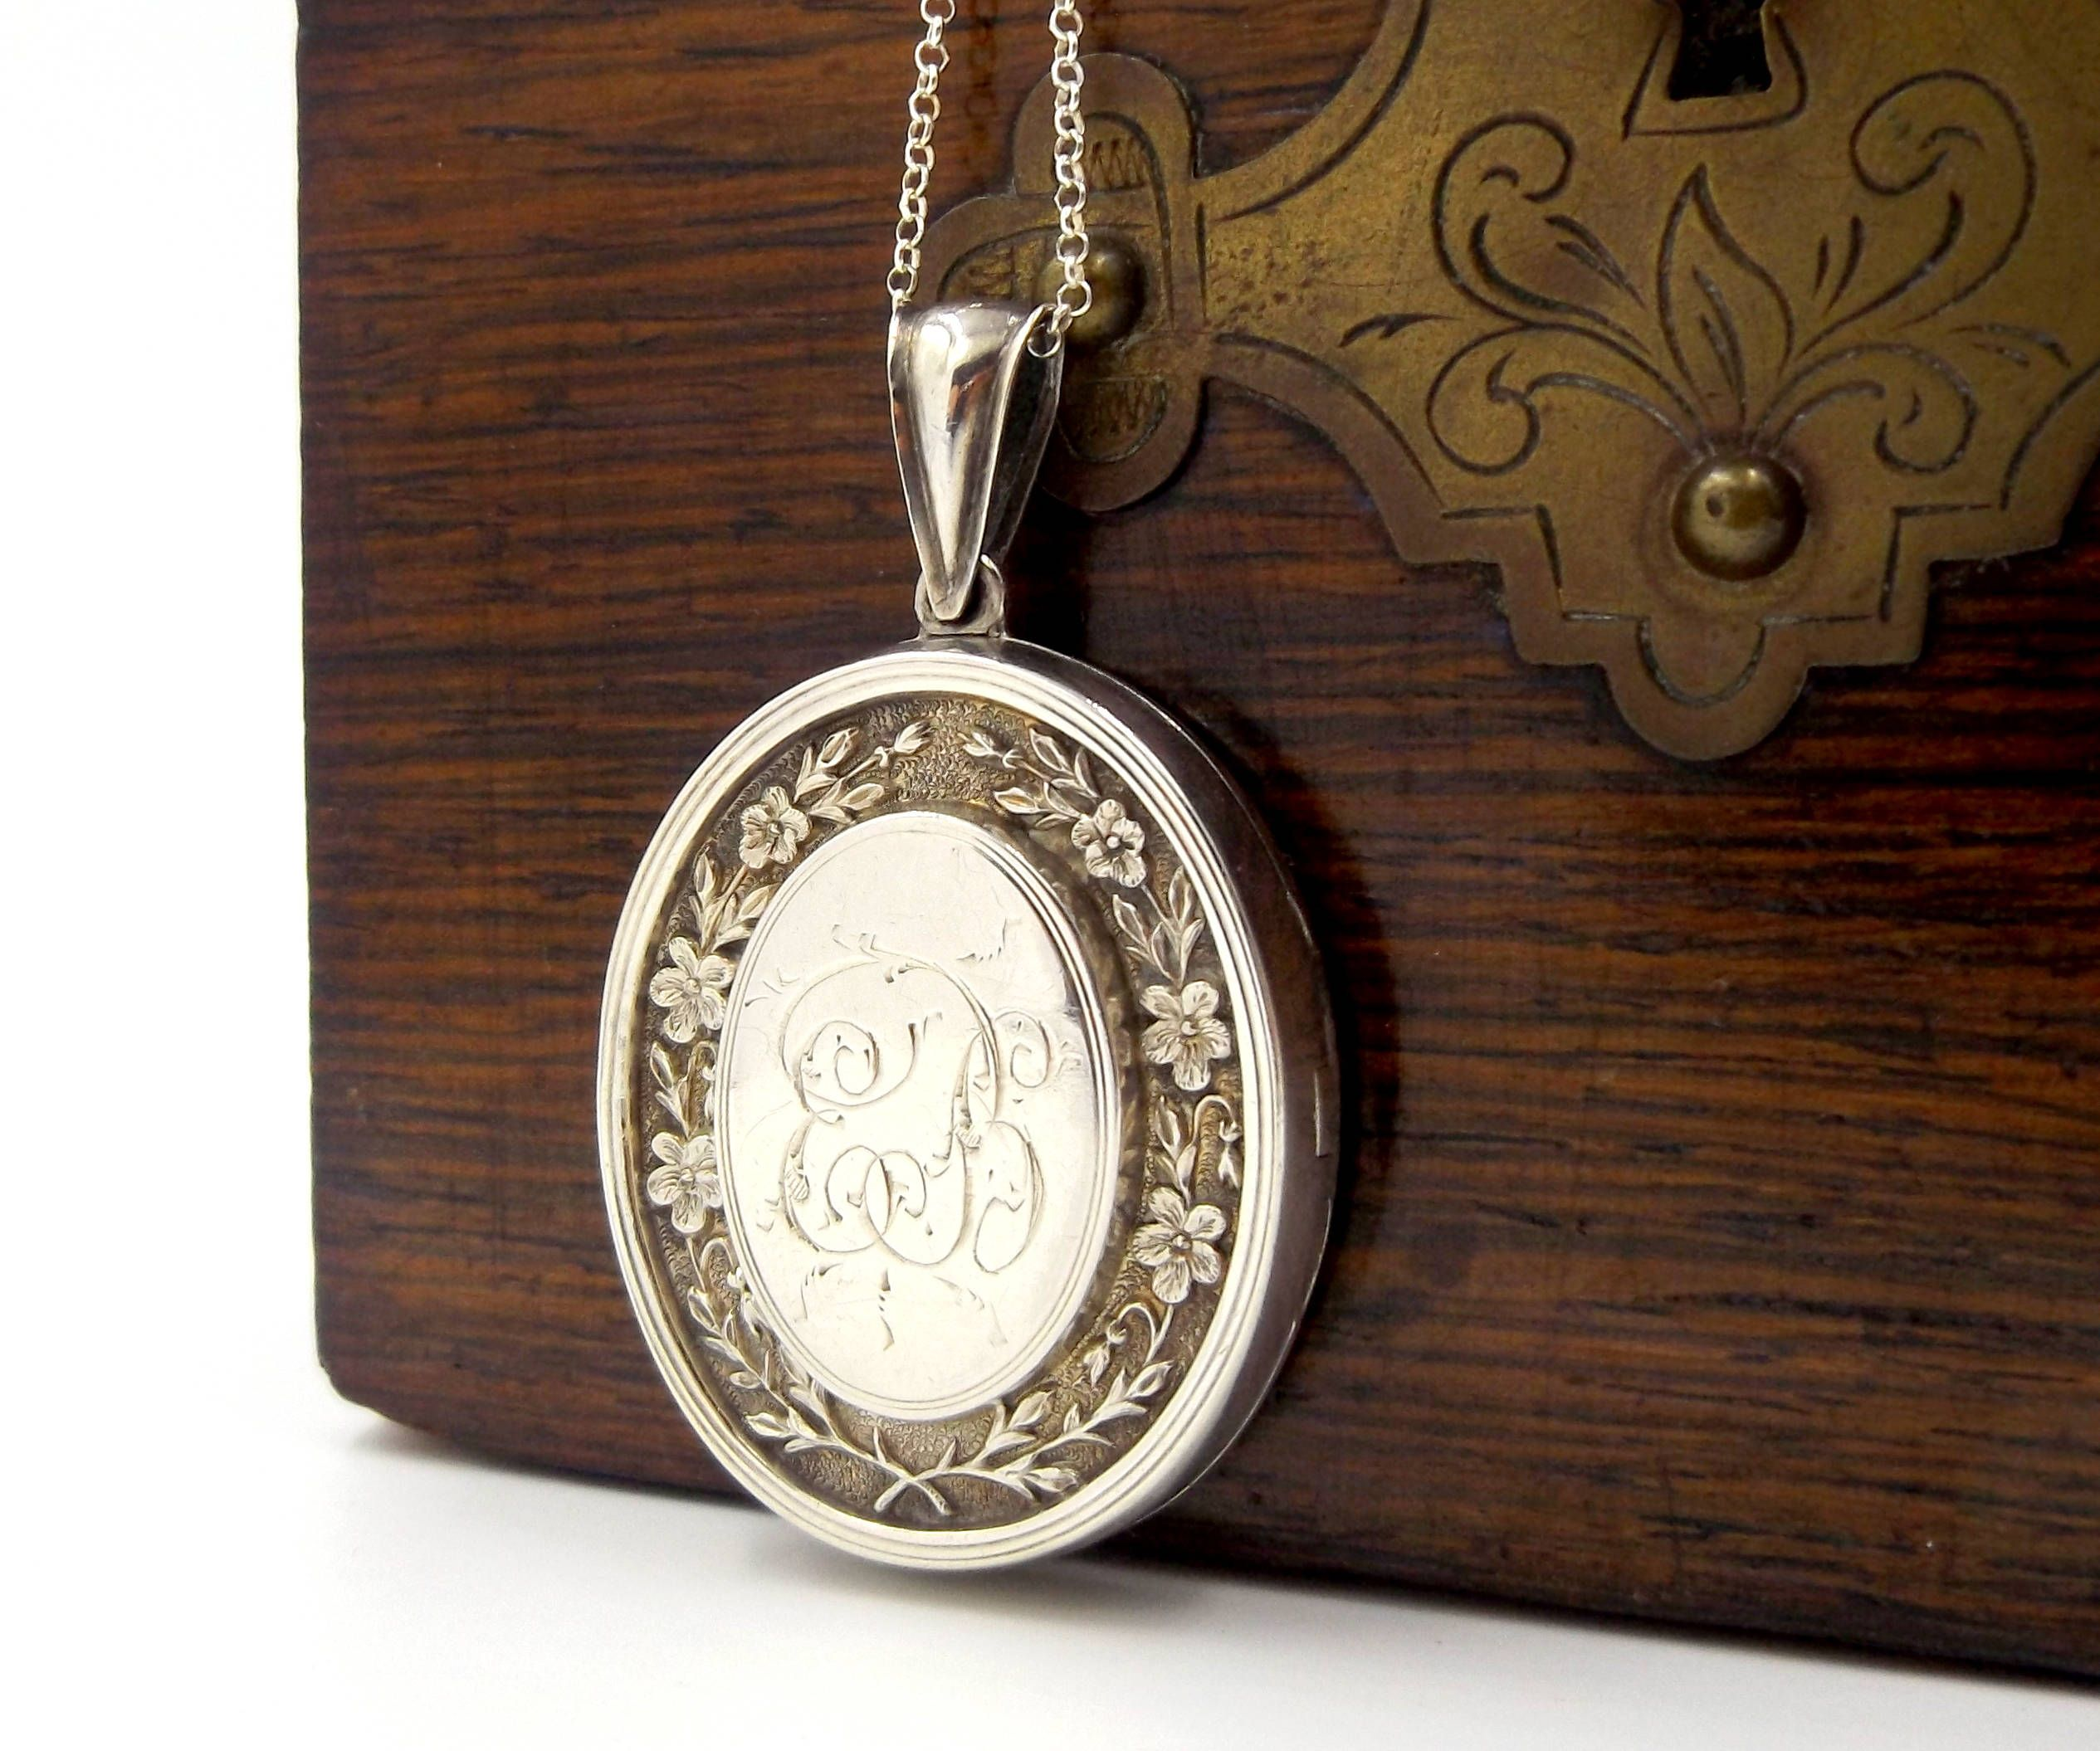 range large pulse image locket in have silver necklaces products and of a we rose lockets exhibitor gold supporting